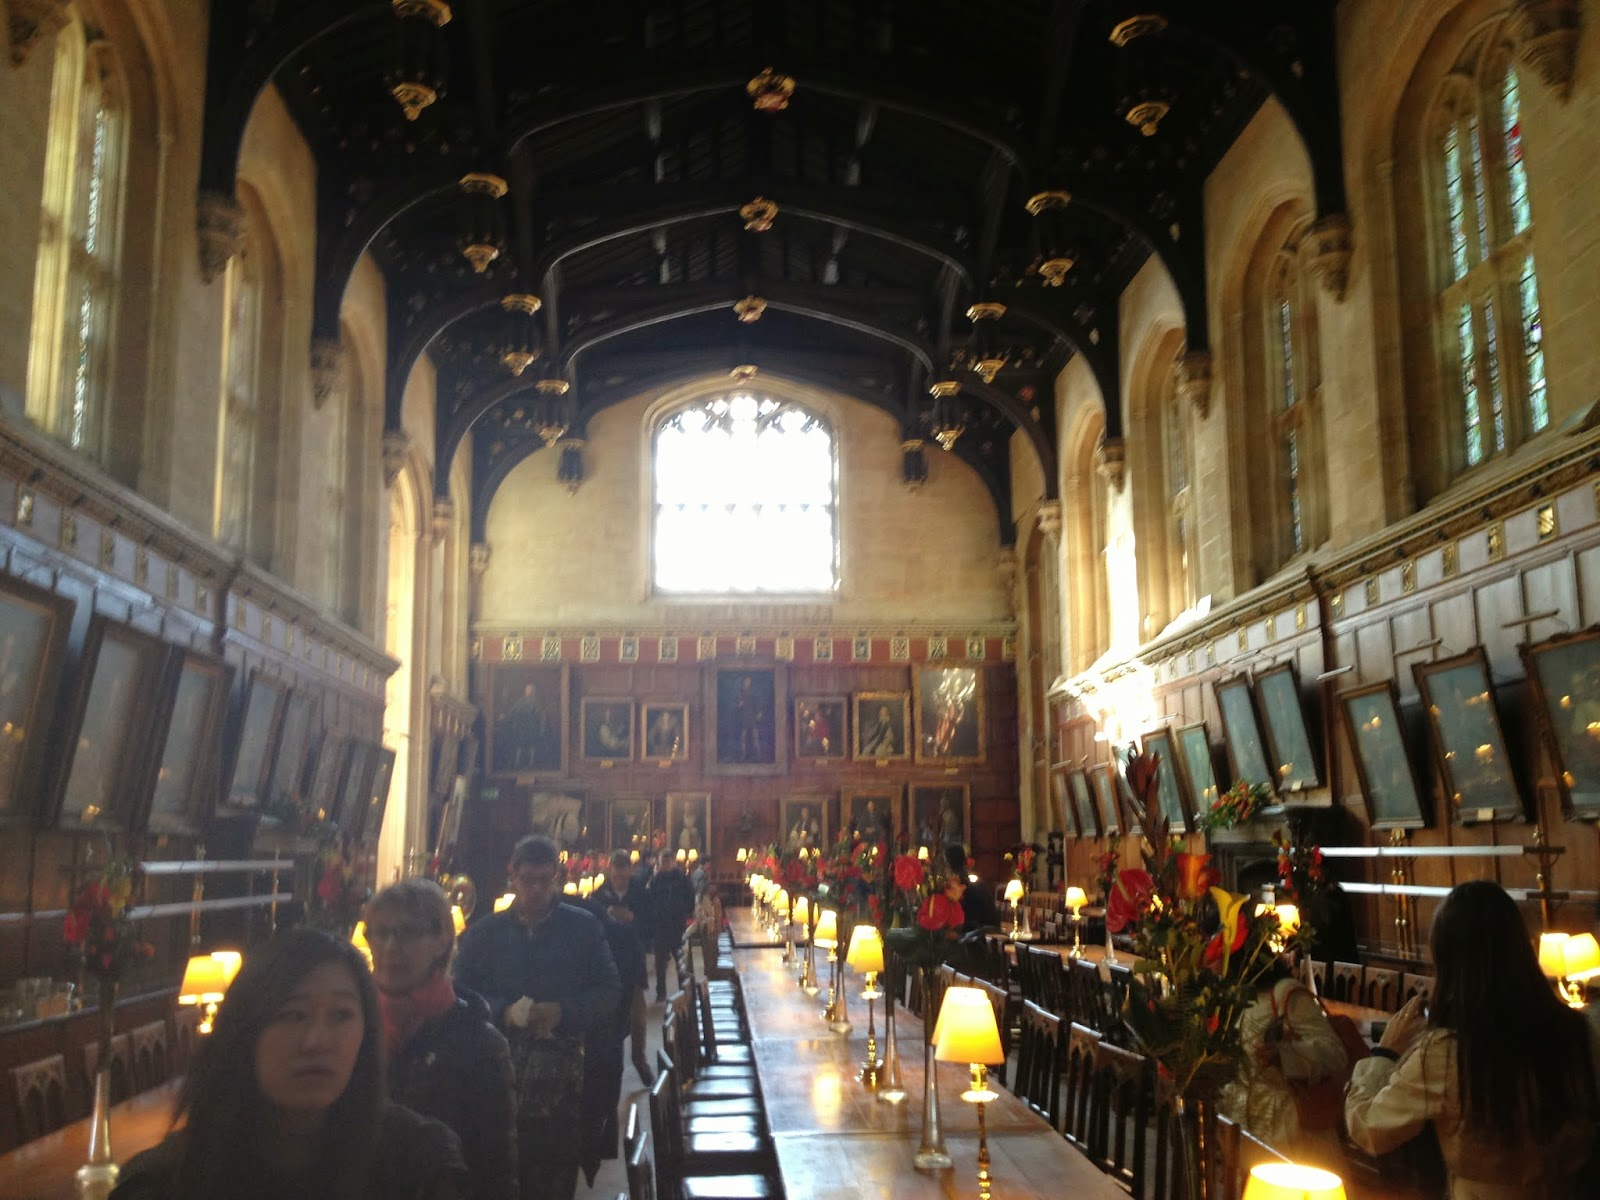 Julie pennell a harry potter fans guide to oxford christ church college dining hall hogwarts great hall publicscrutiny Choice Image